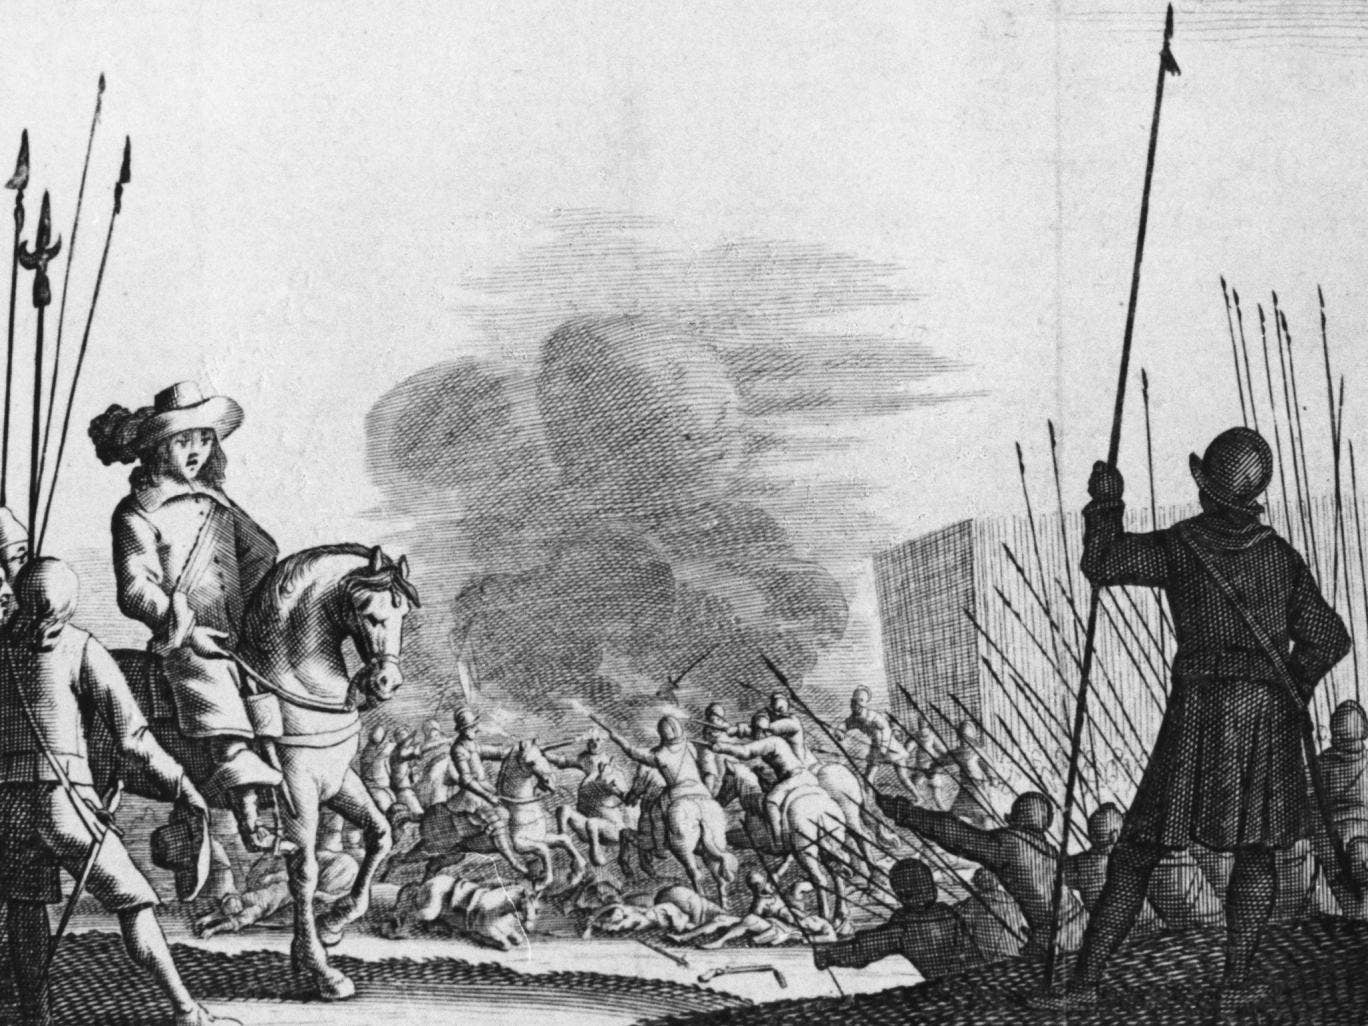 Oliver Cromwell during the third English civil war. A study has found that a warmer world will cause more inter-group conflict and civil wars